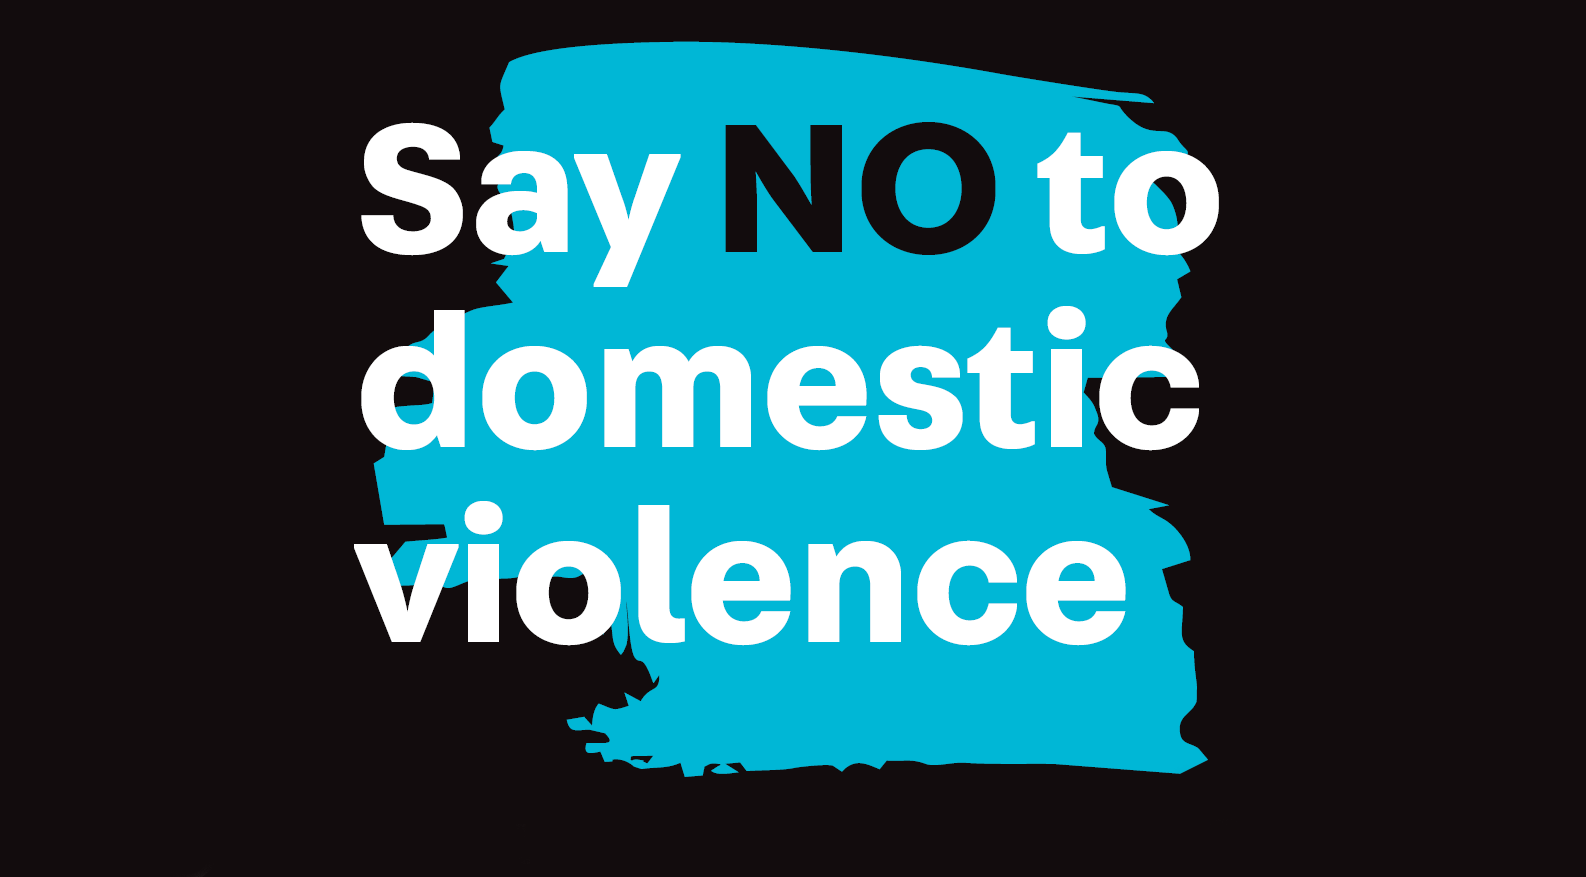 Say no to domestic violence poster